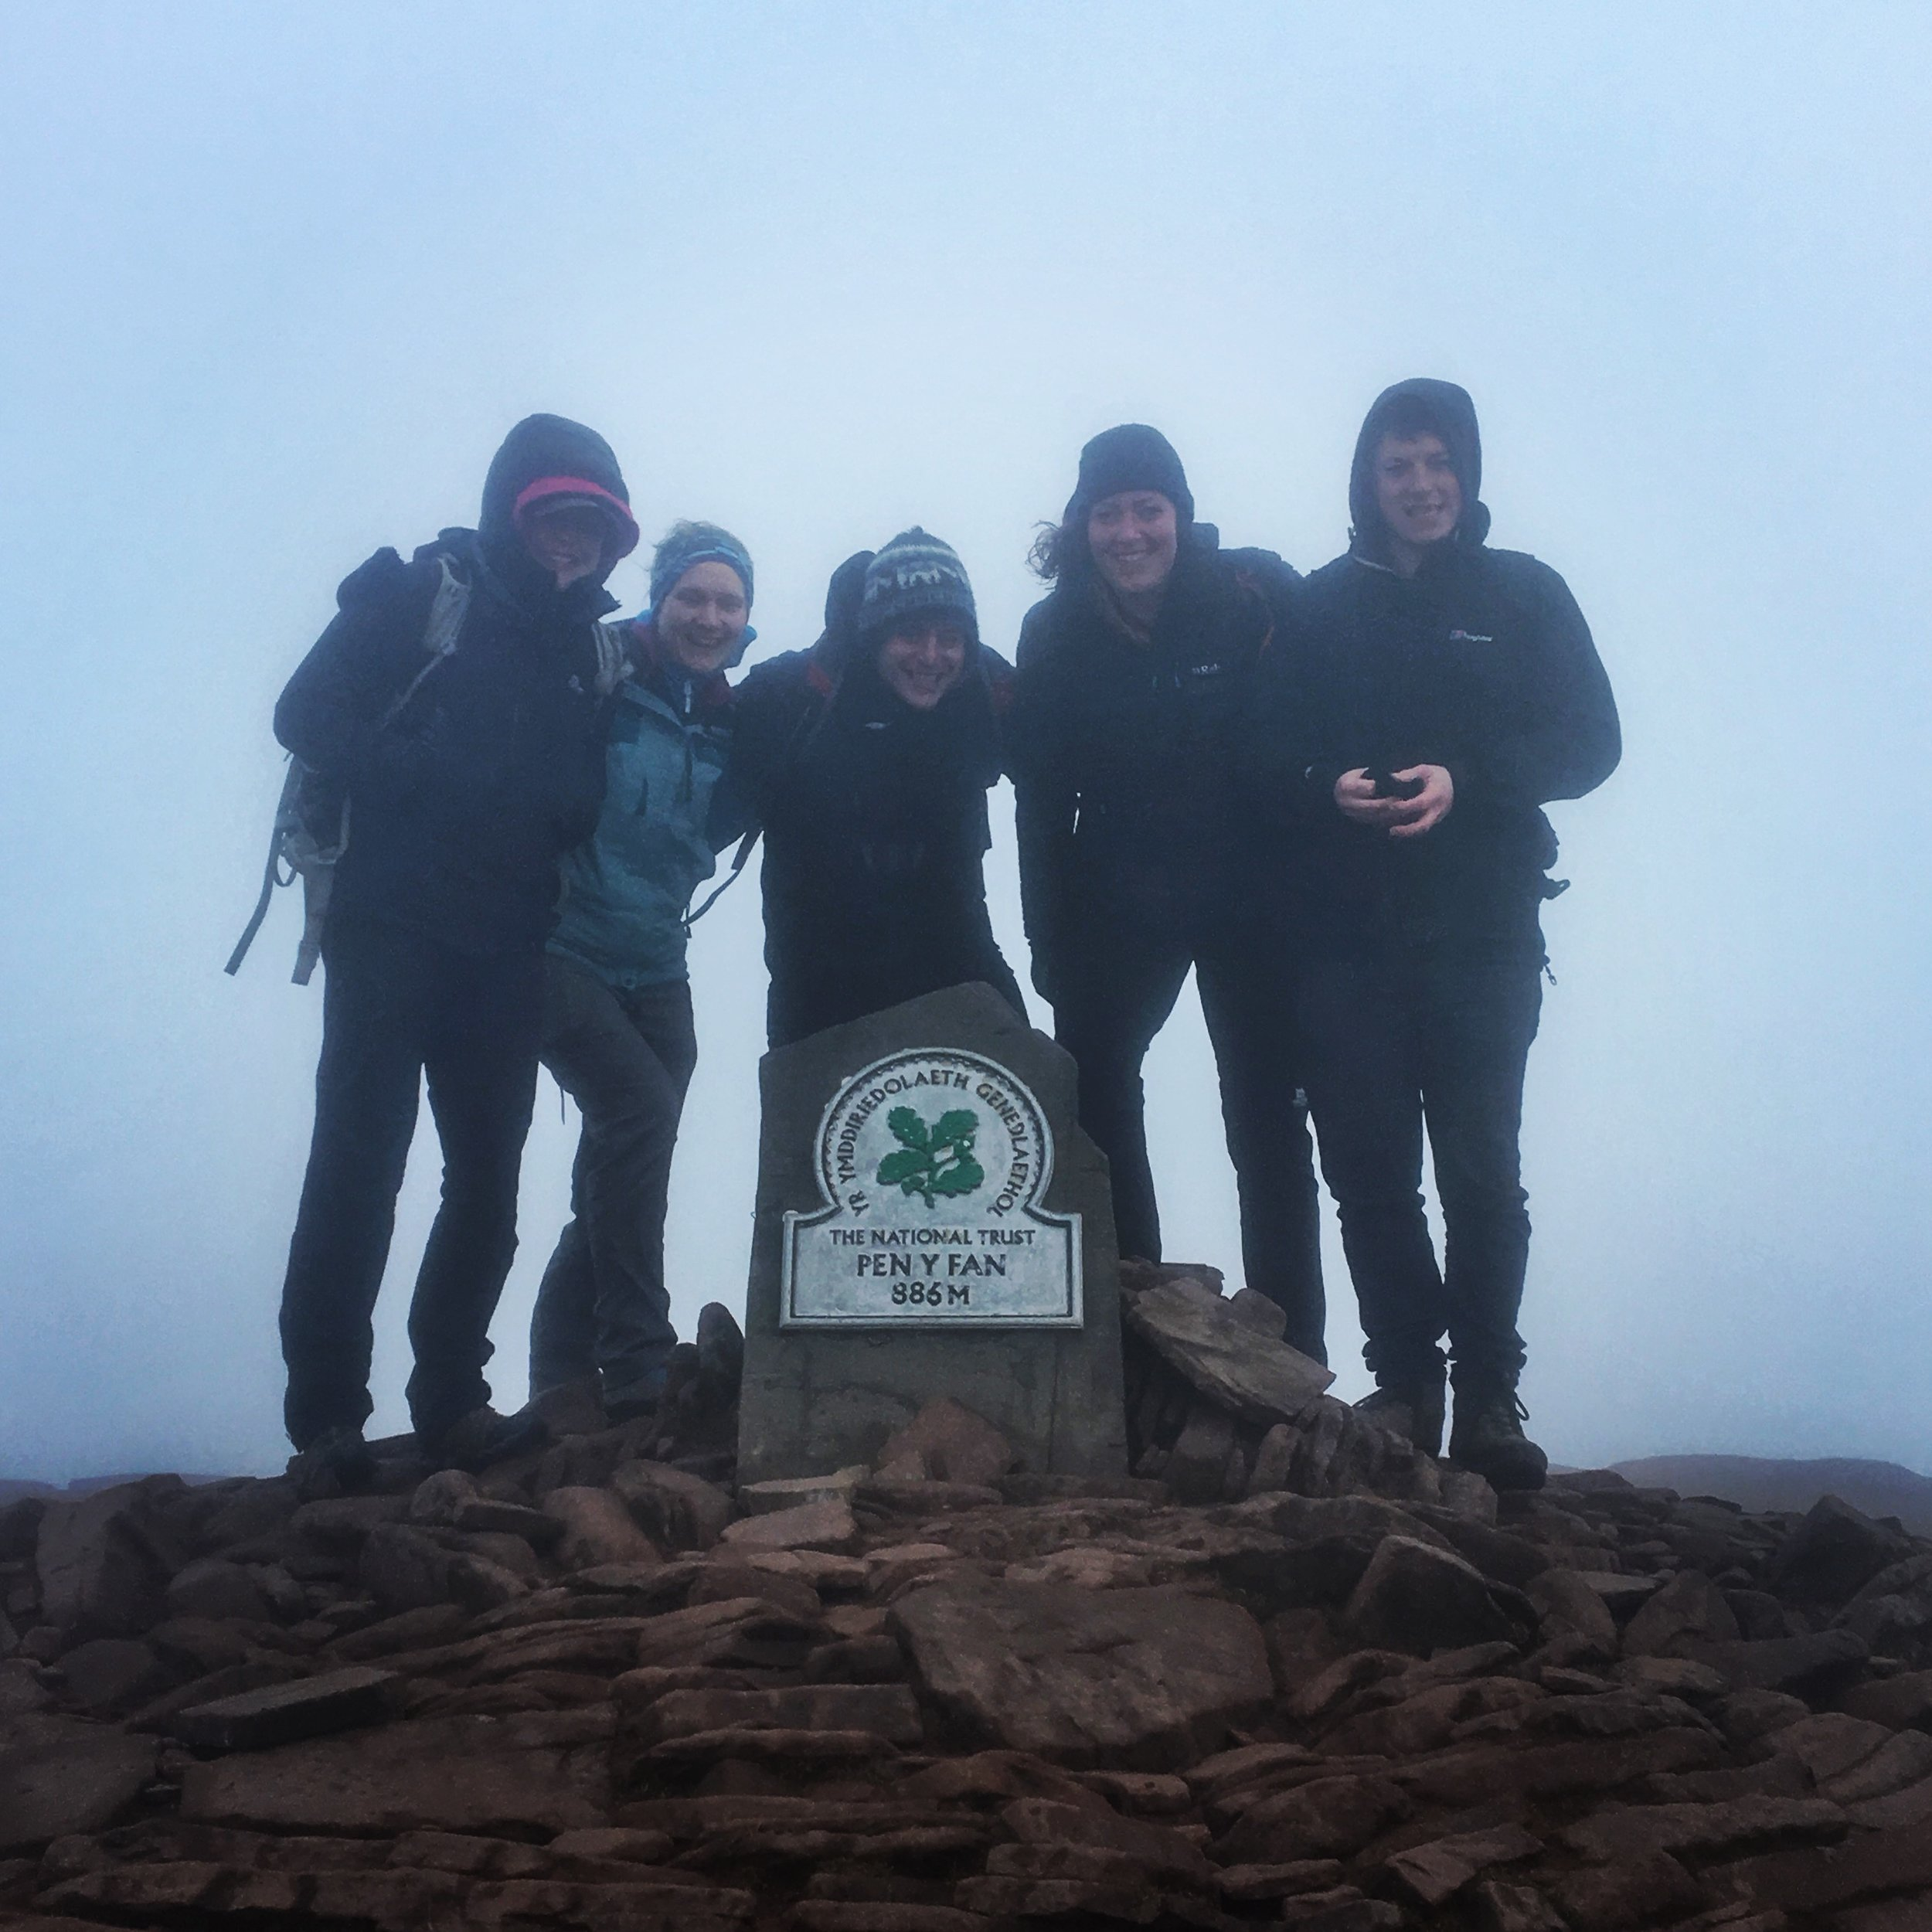 At the top of Pen Y Fan, Feb 2017